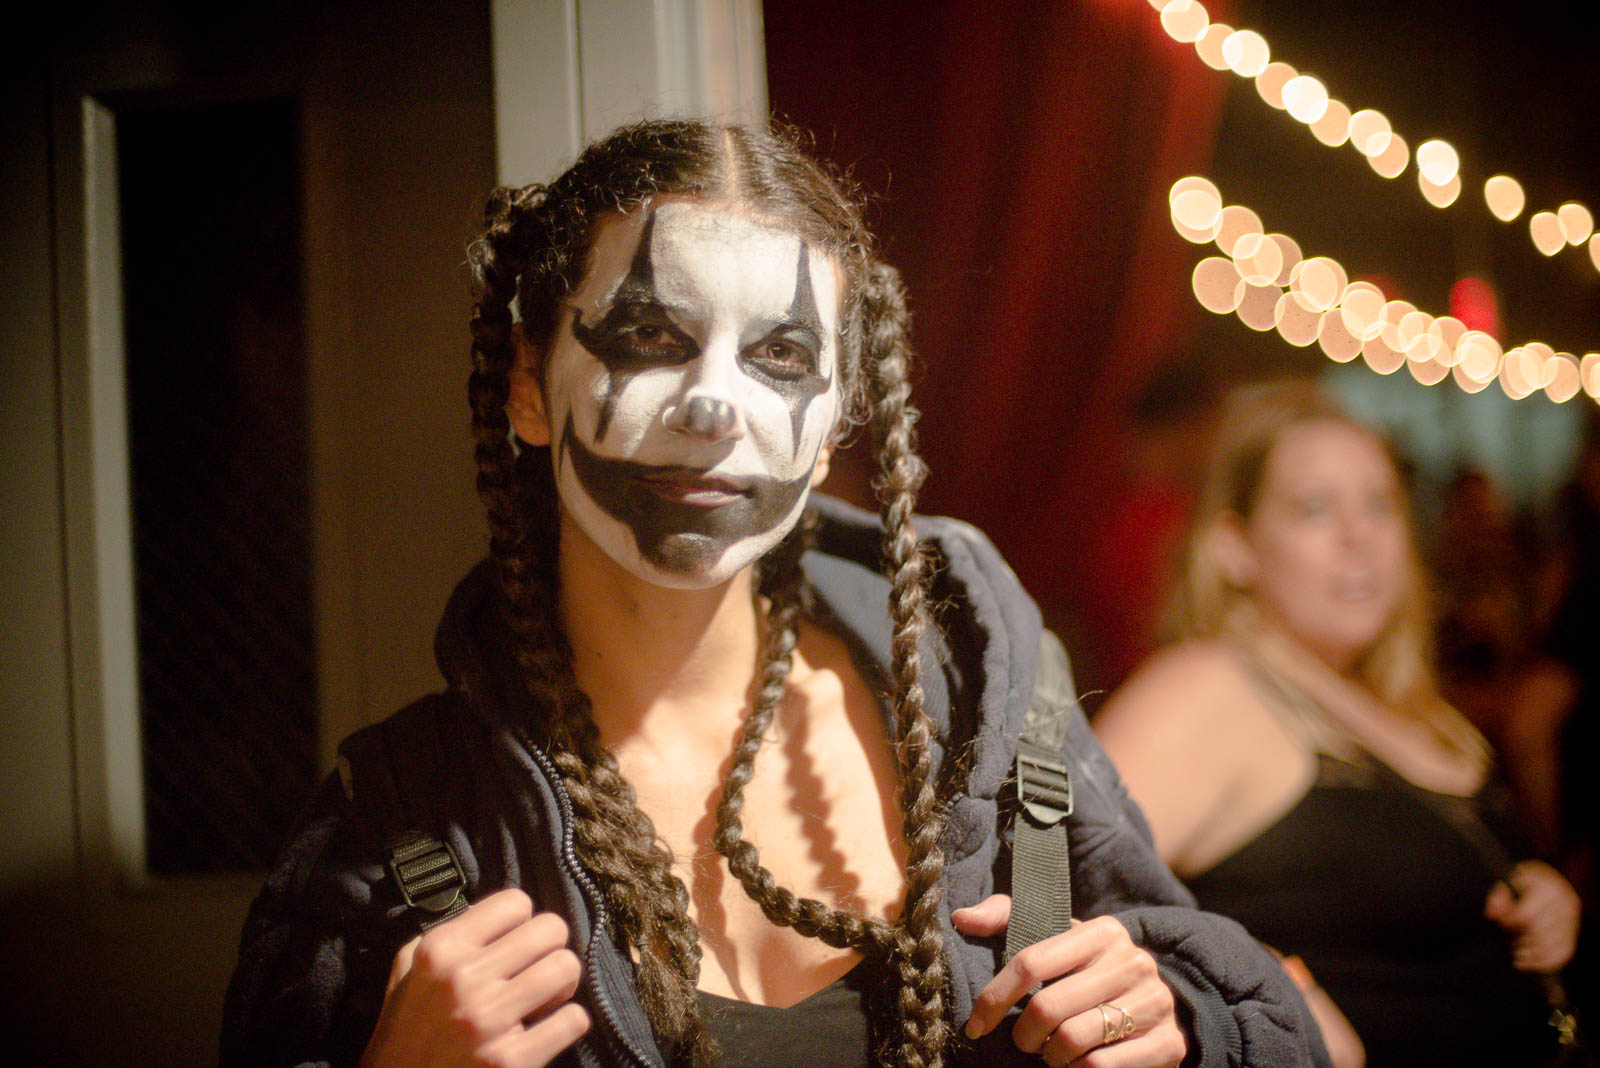 Insane Clown Posse by Edwina Hay-0521.jpg